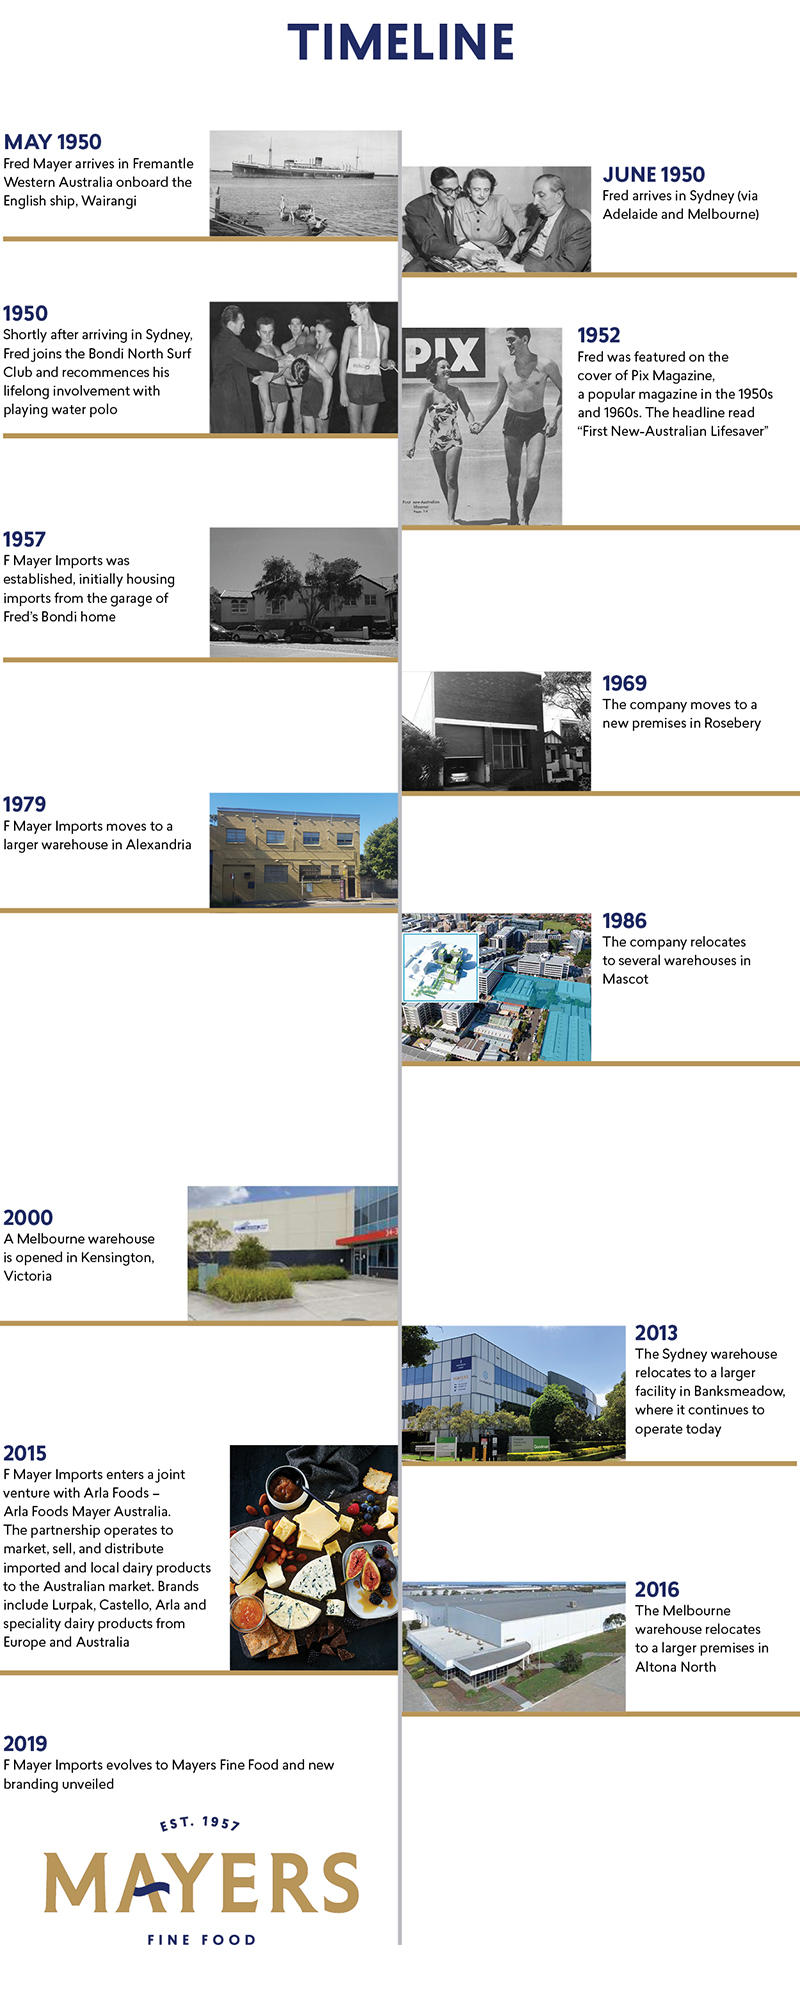 Mayers Timeline Graphic showing company milestones throughout the years